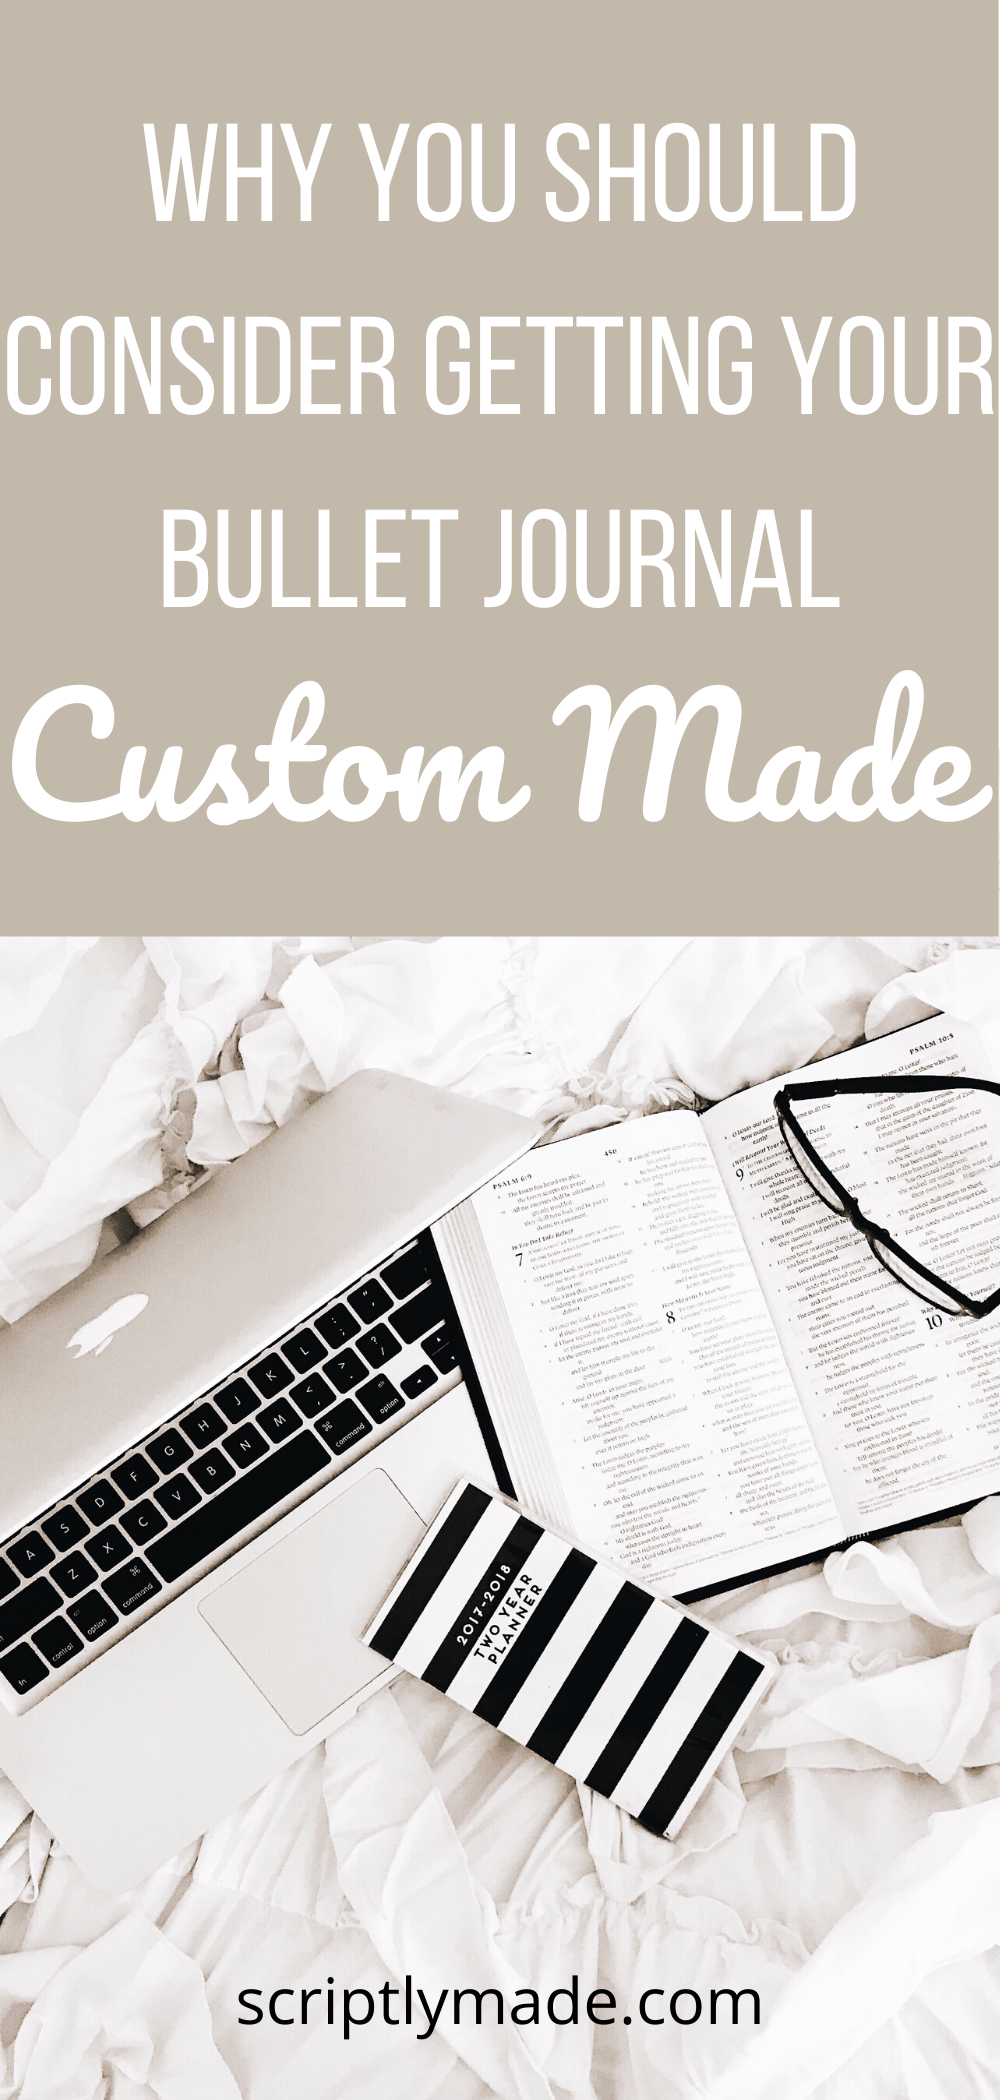 Why You Should Consider Getting Your Bullet Journal Custom Made - ScriptlyMade